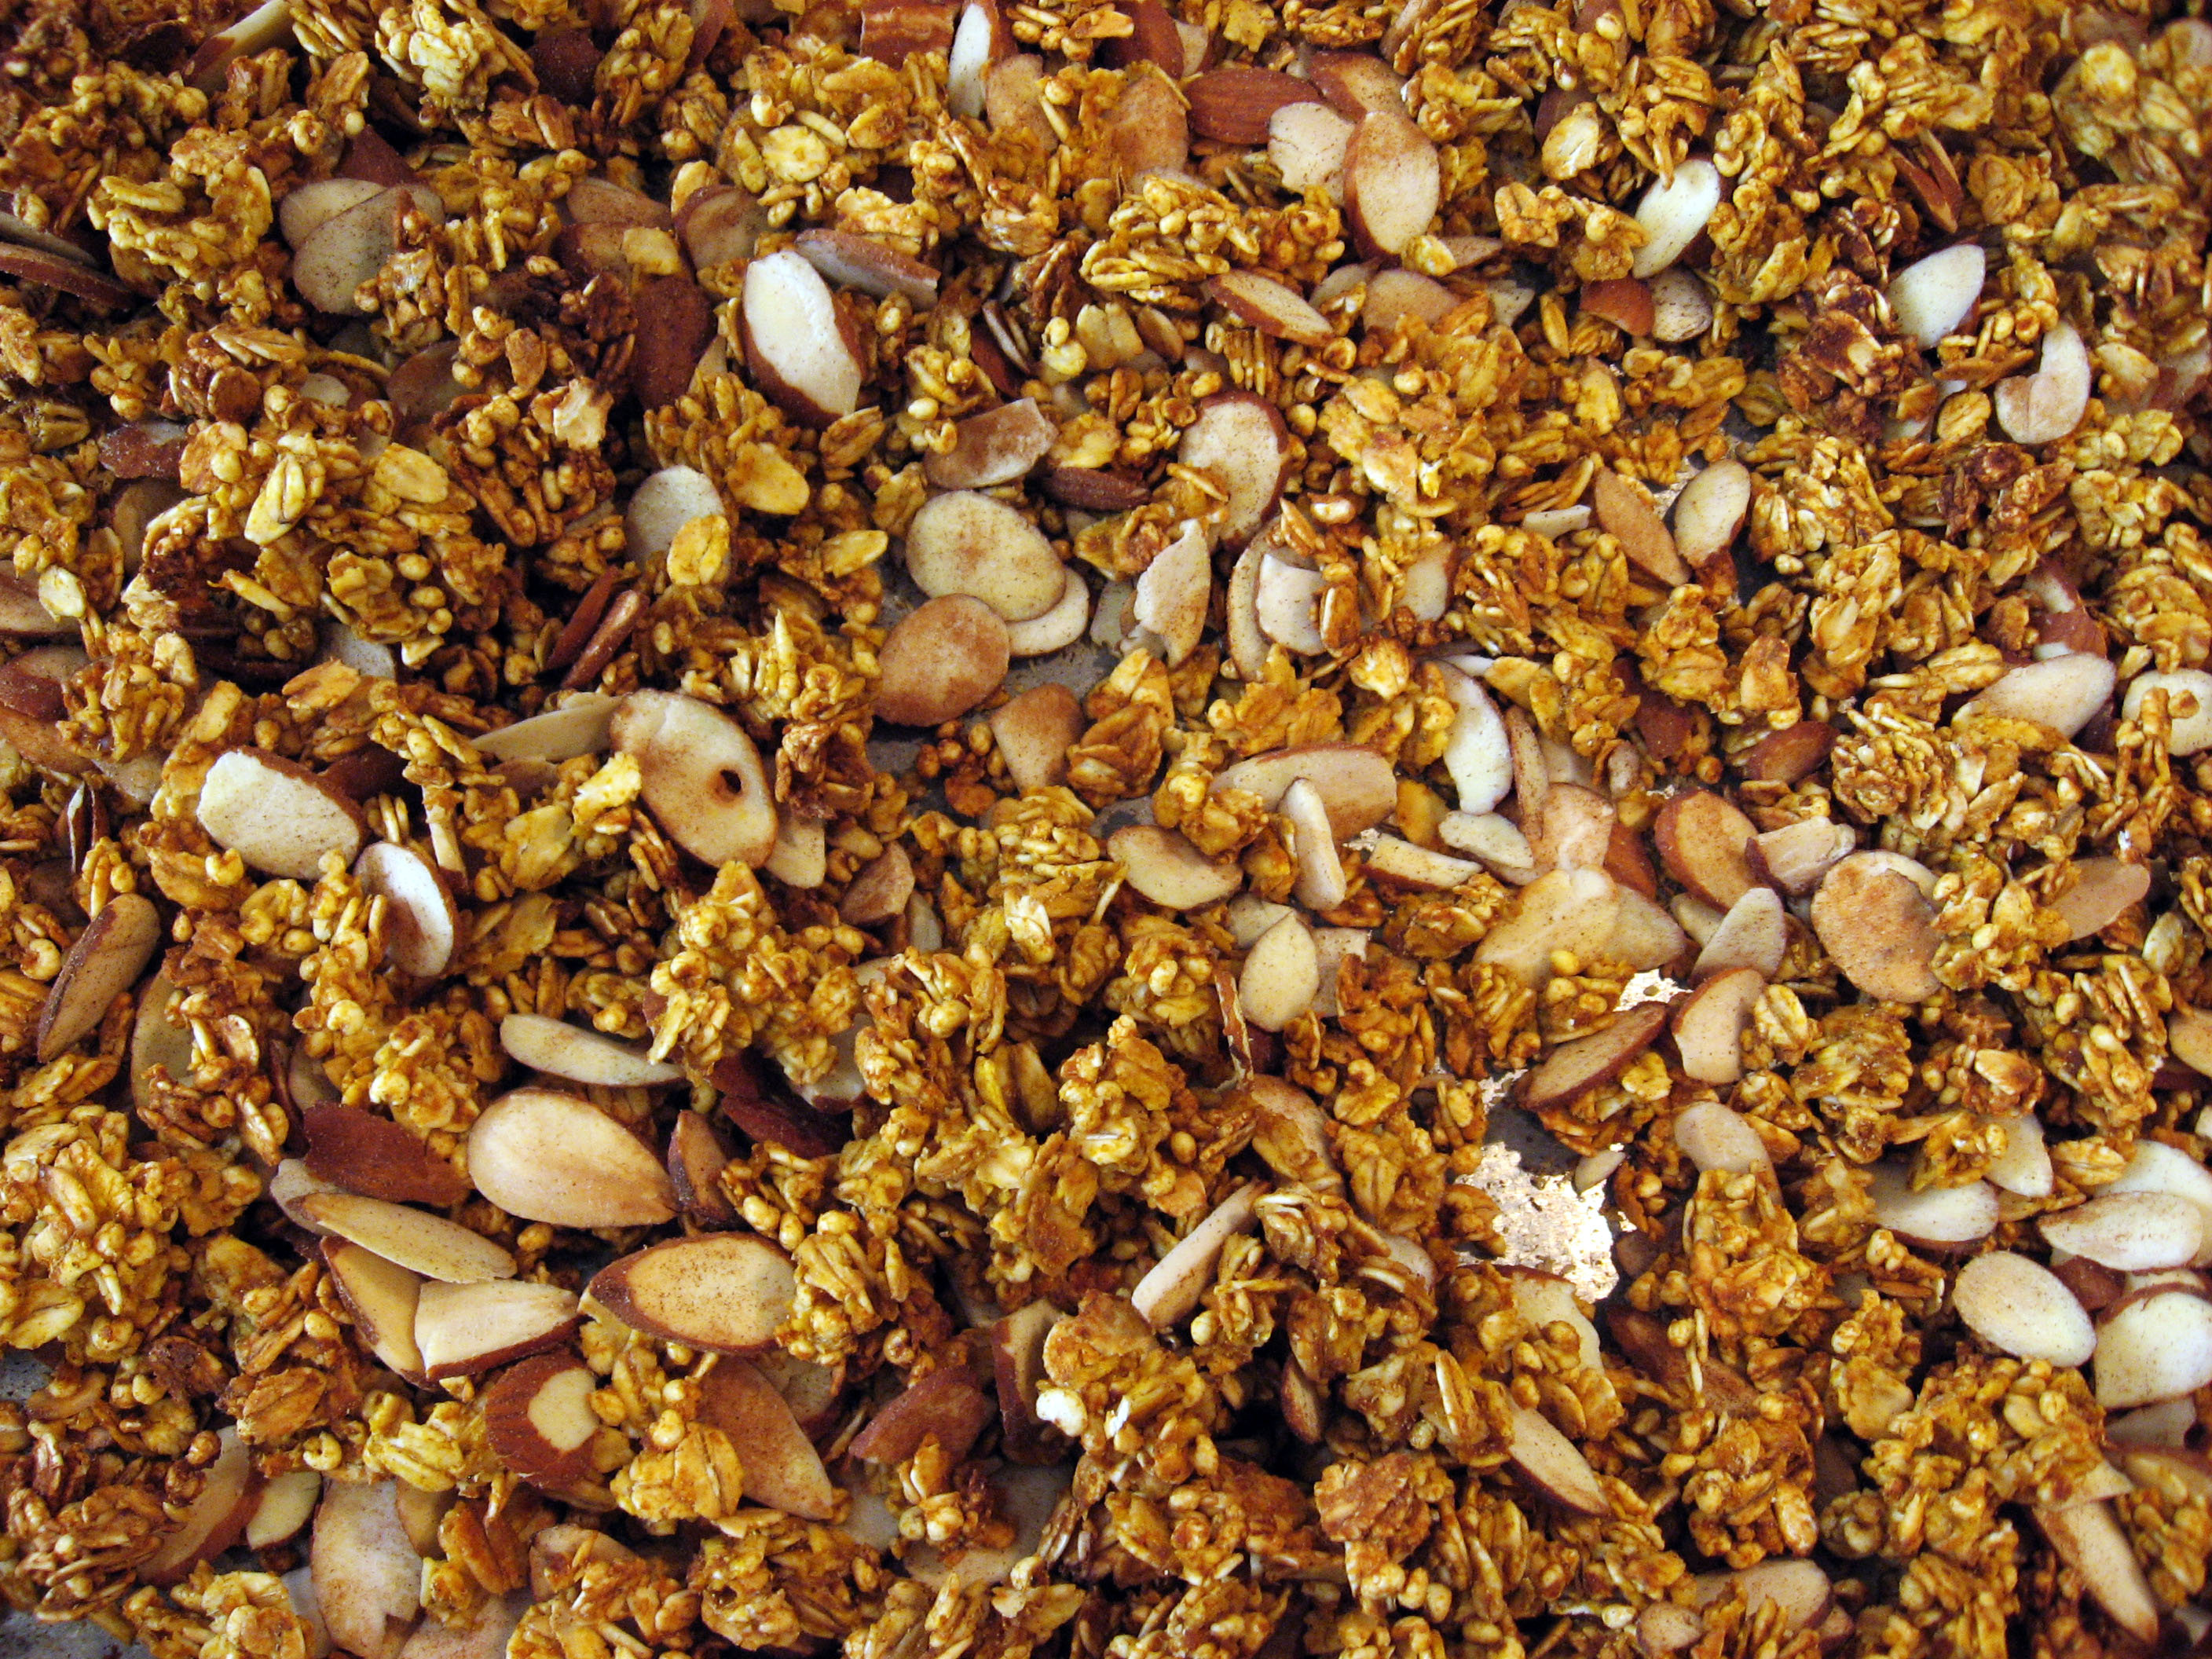 Let the granola cool completely before tossing with dark chocolate ...